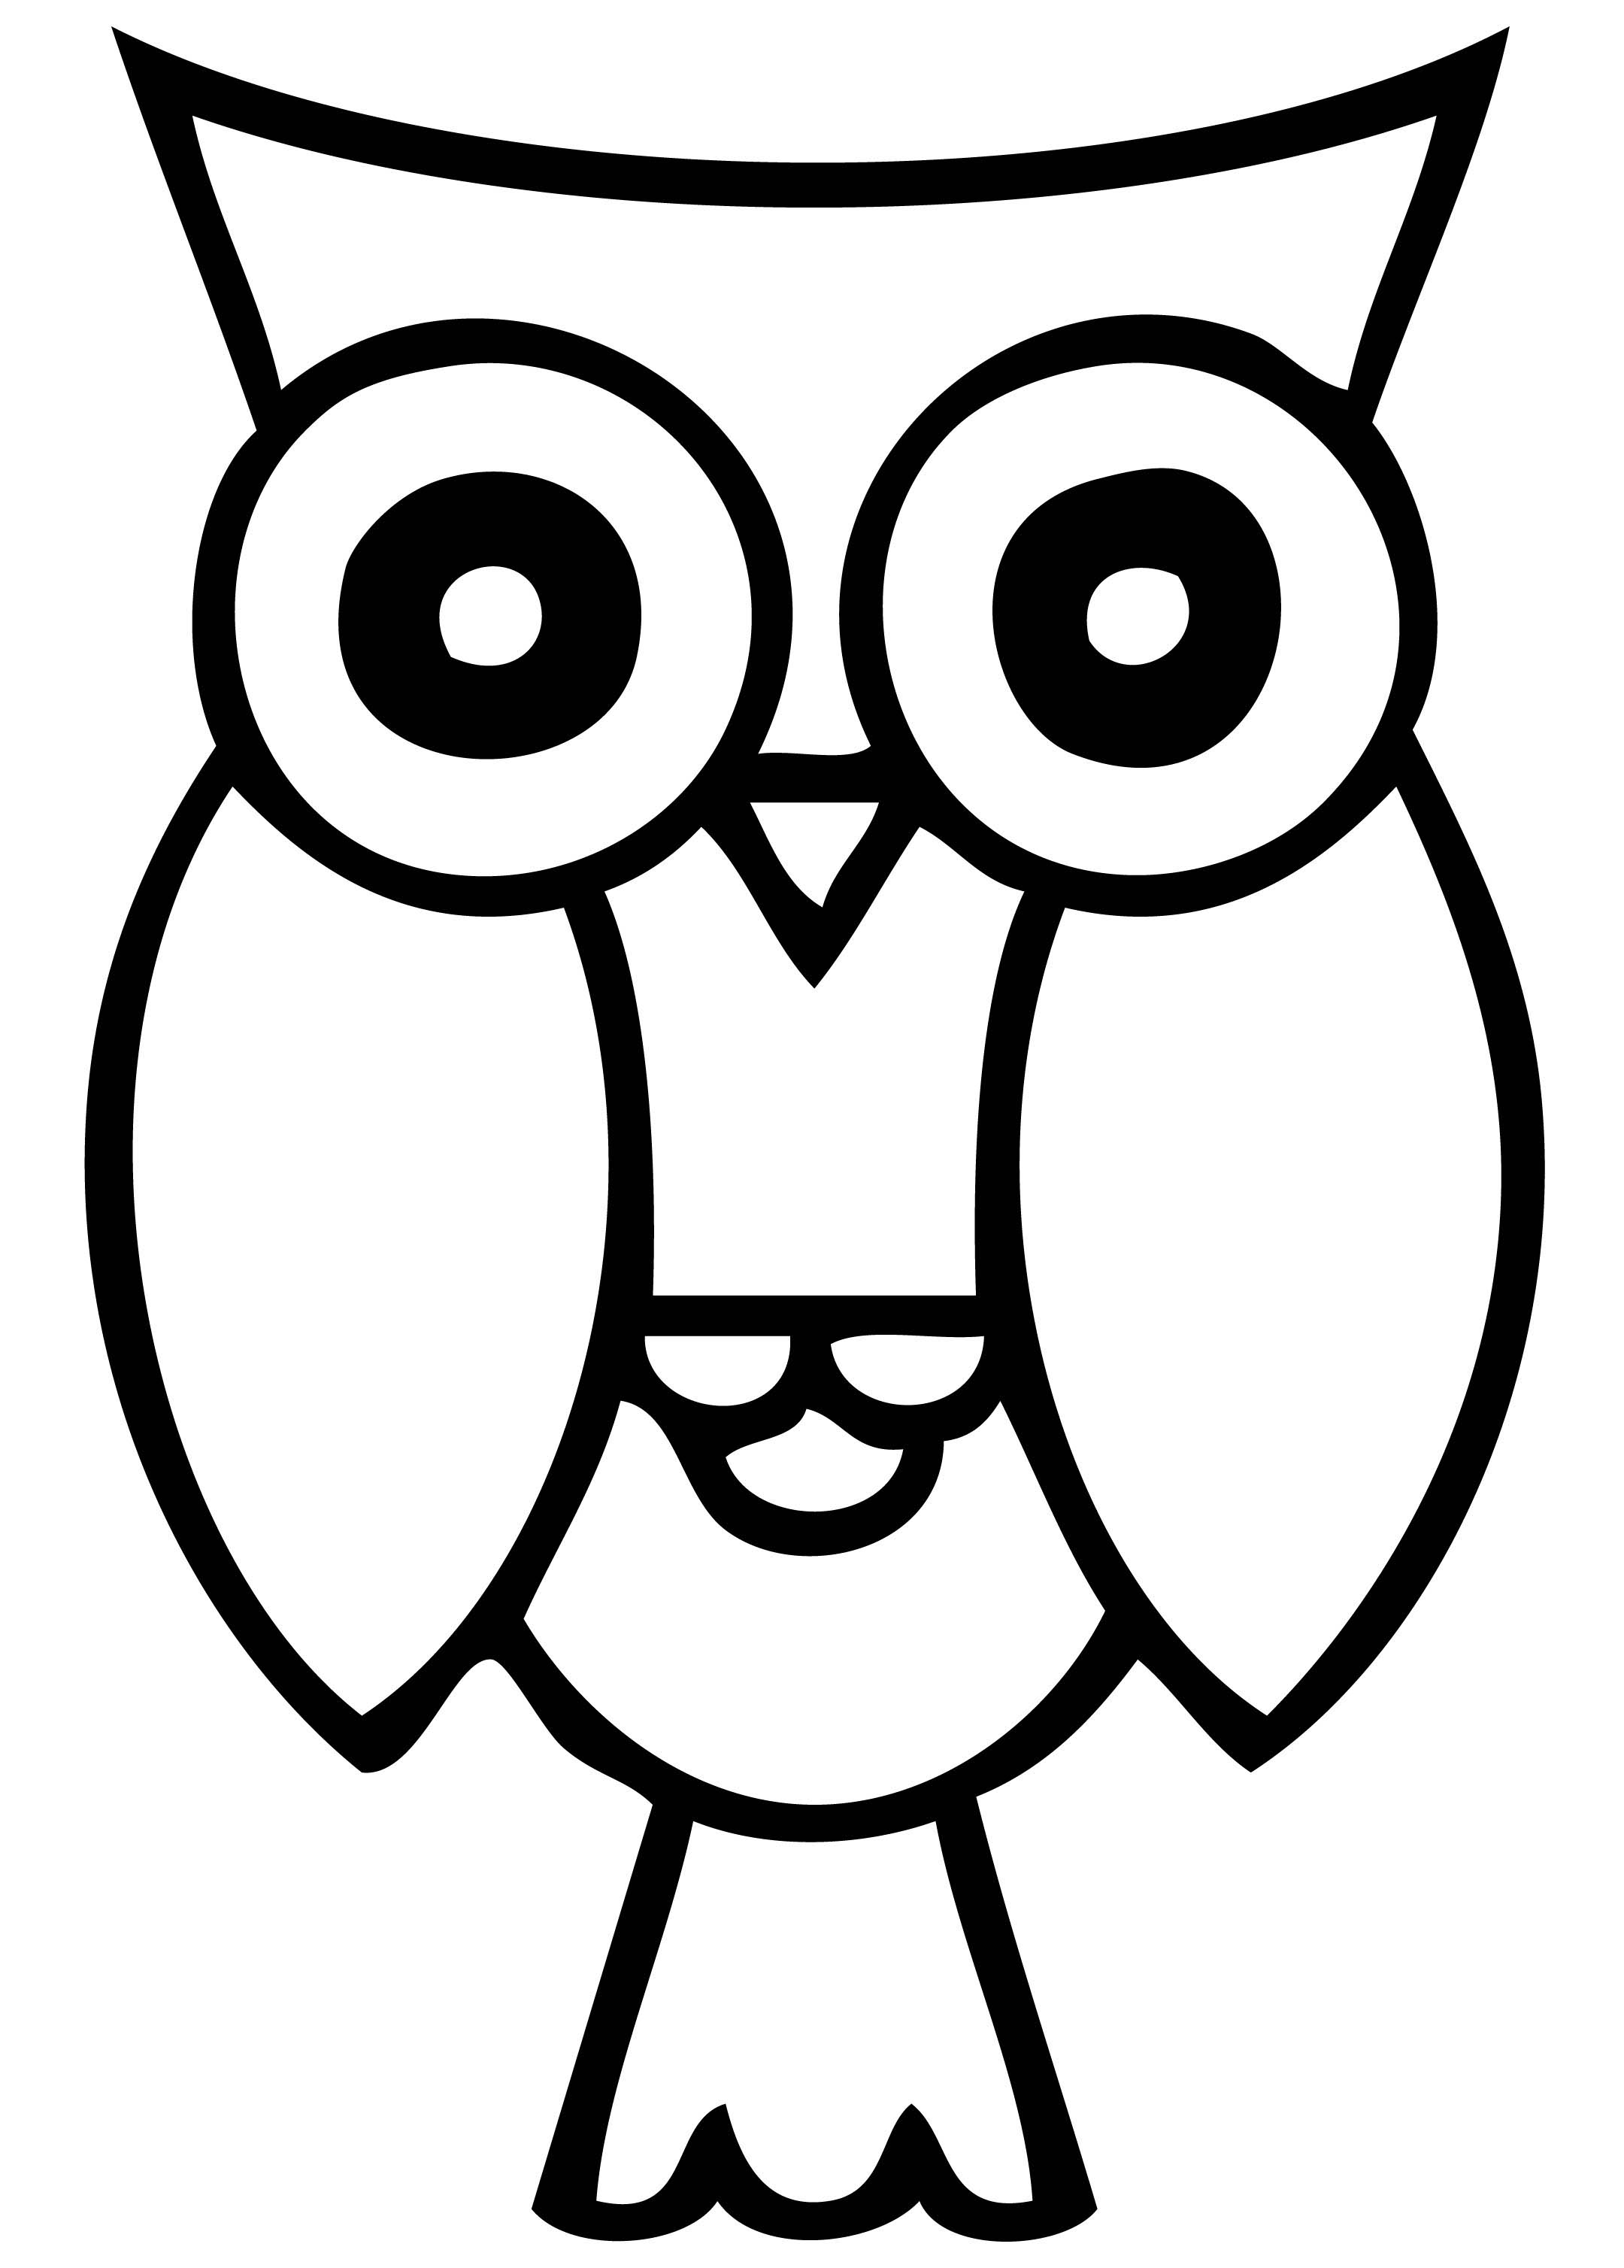 Best Owl Clipart Black and White #28301 - Clipartion.com Baby Owl Black And White